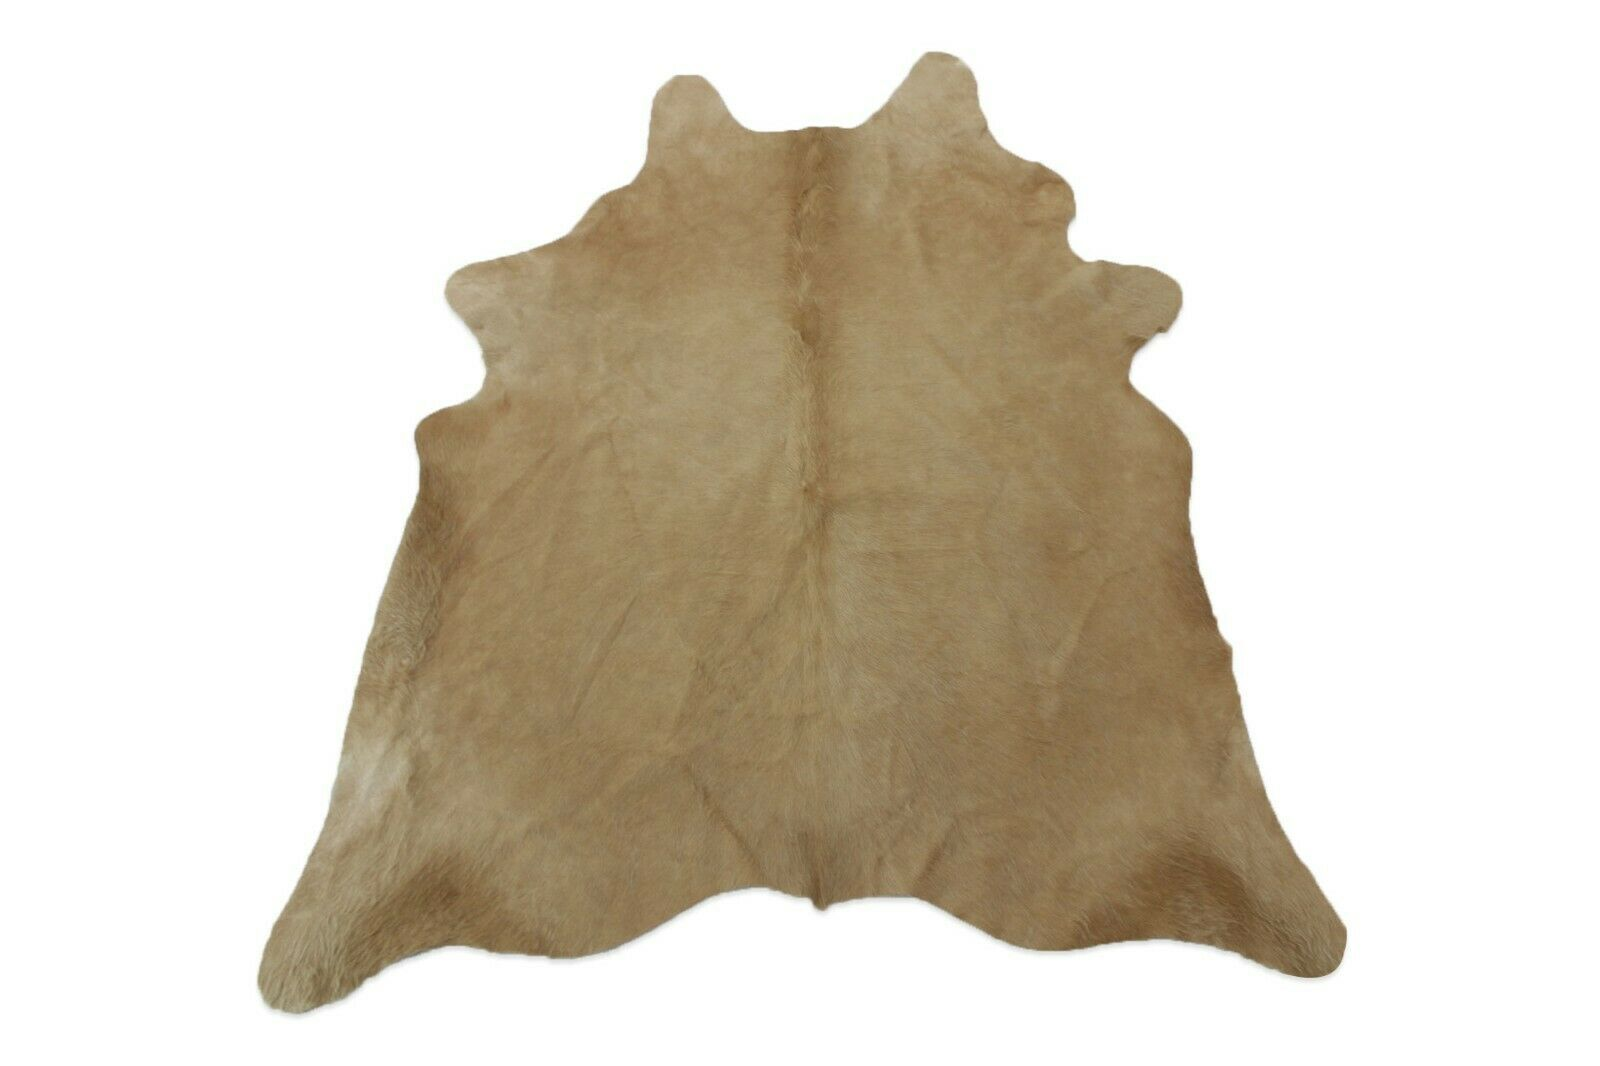 Details About Real Cowhide Rug Beige White Large 6x7 Ft Cow Skin Hair On Leather Hide Area Rug With Images Cow Hide Rug Real Cowhide Rugs Cow Skin Leather